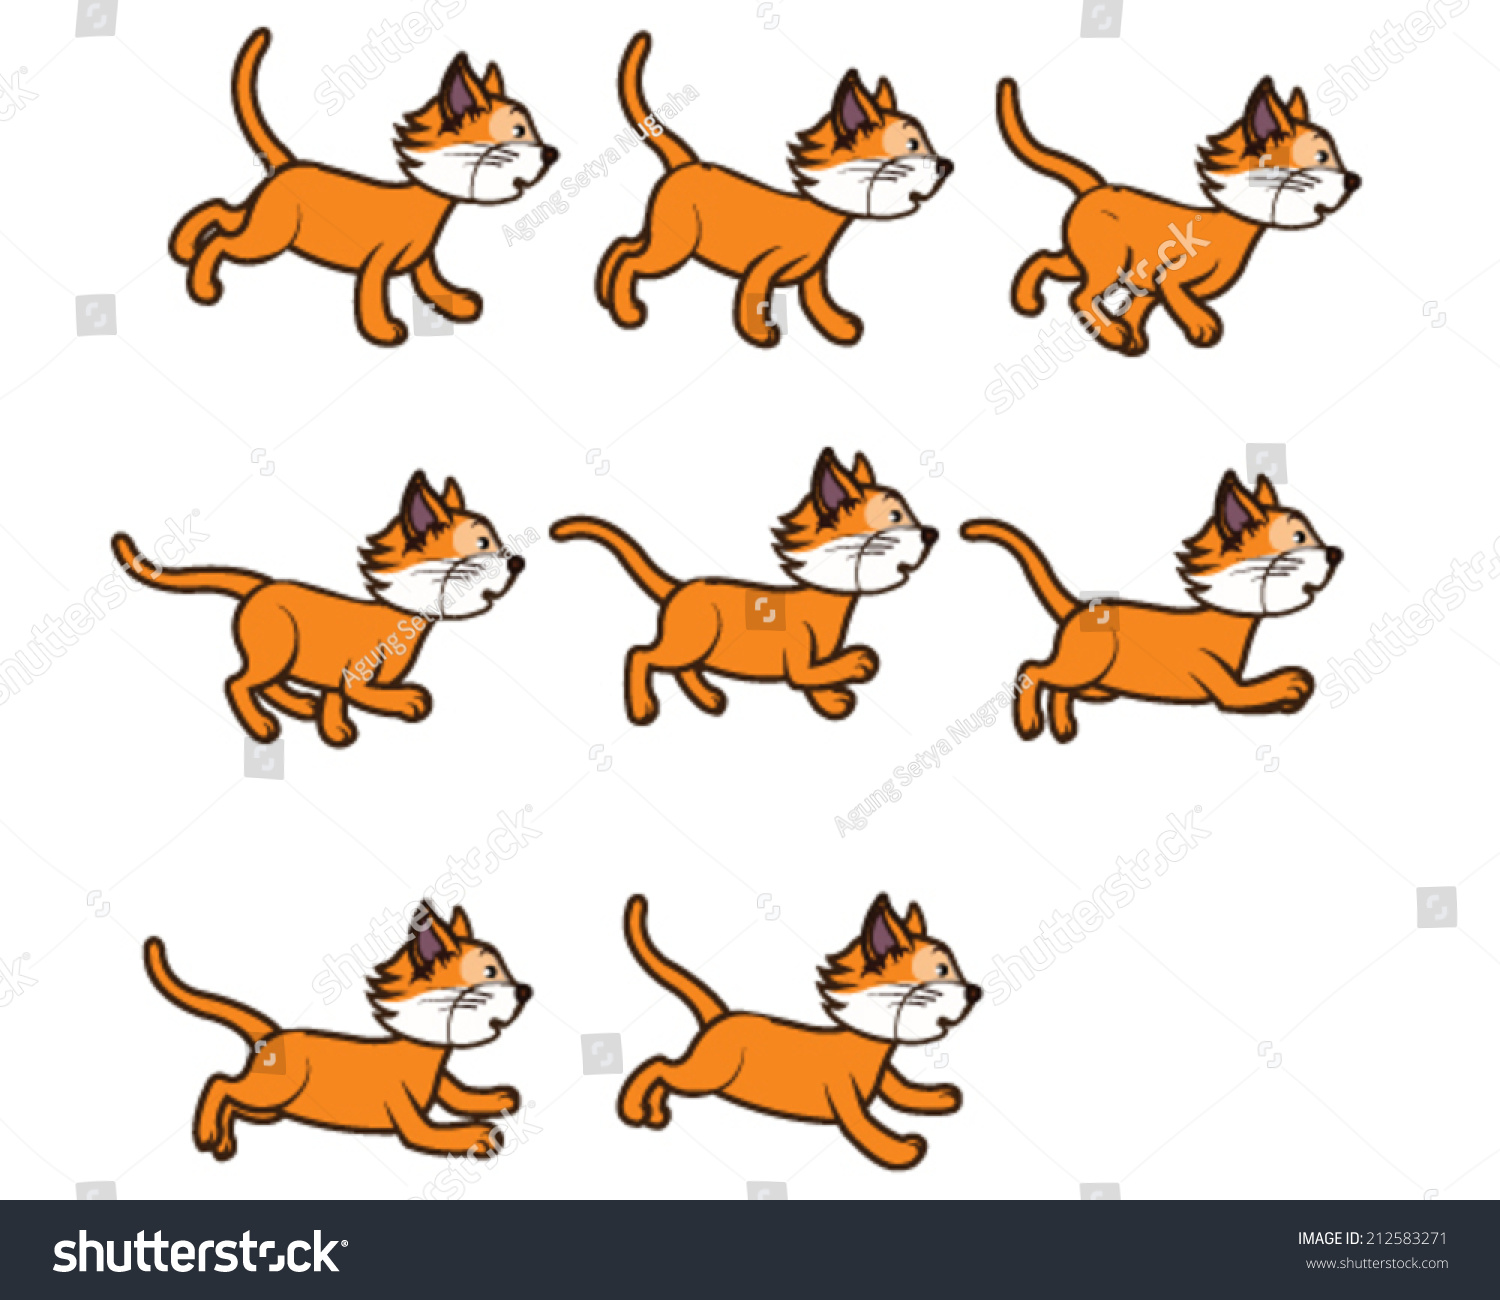 Cat Walking And Jumping Animation